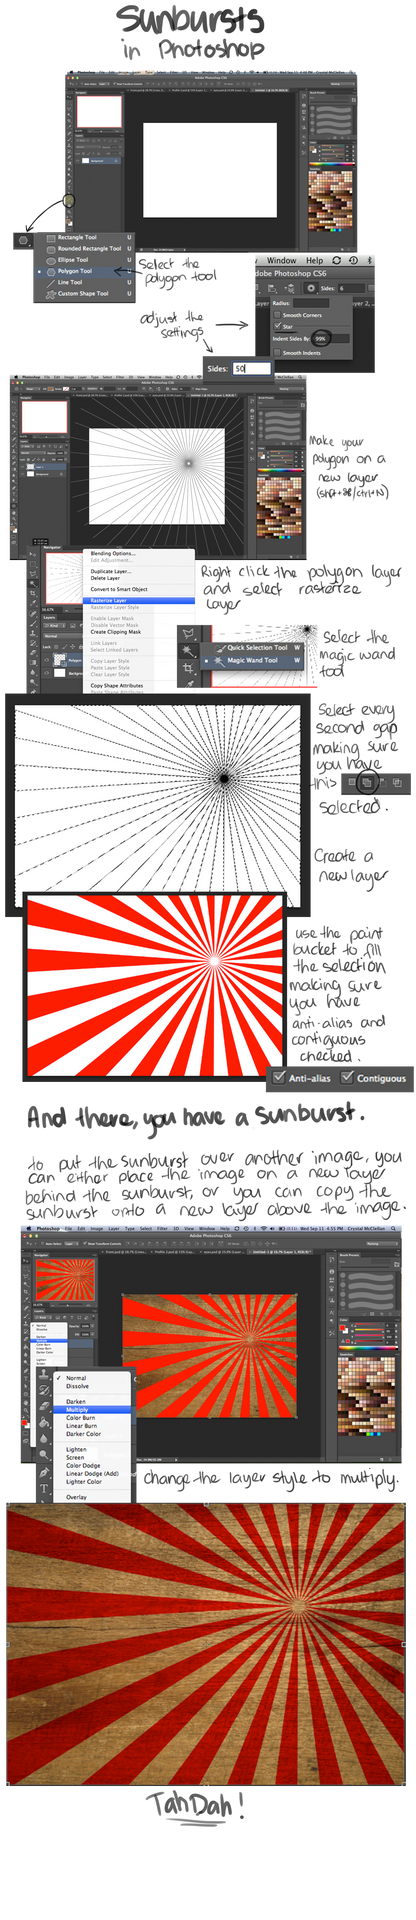 How to Create a Sunburst in Photoshop CS6 by RTNinja